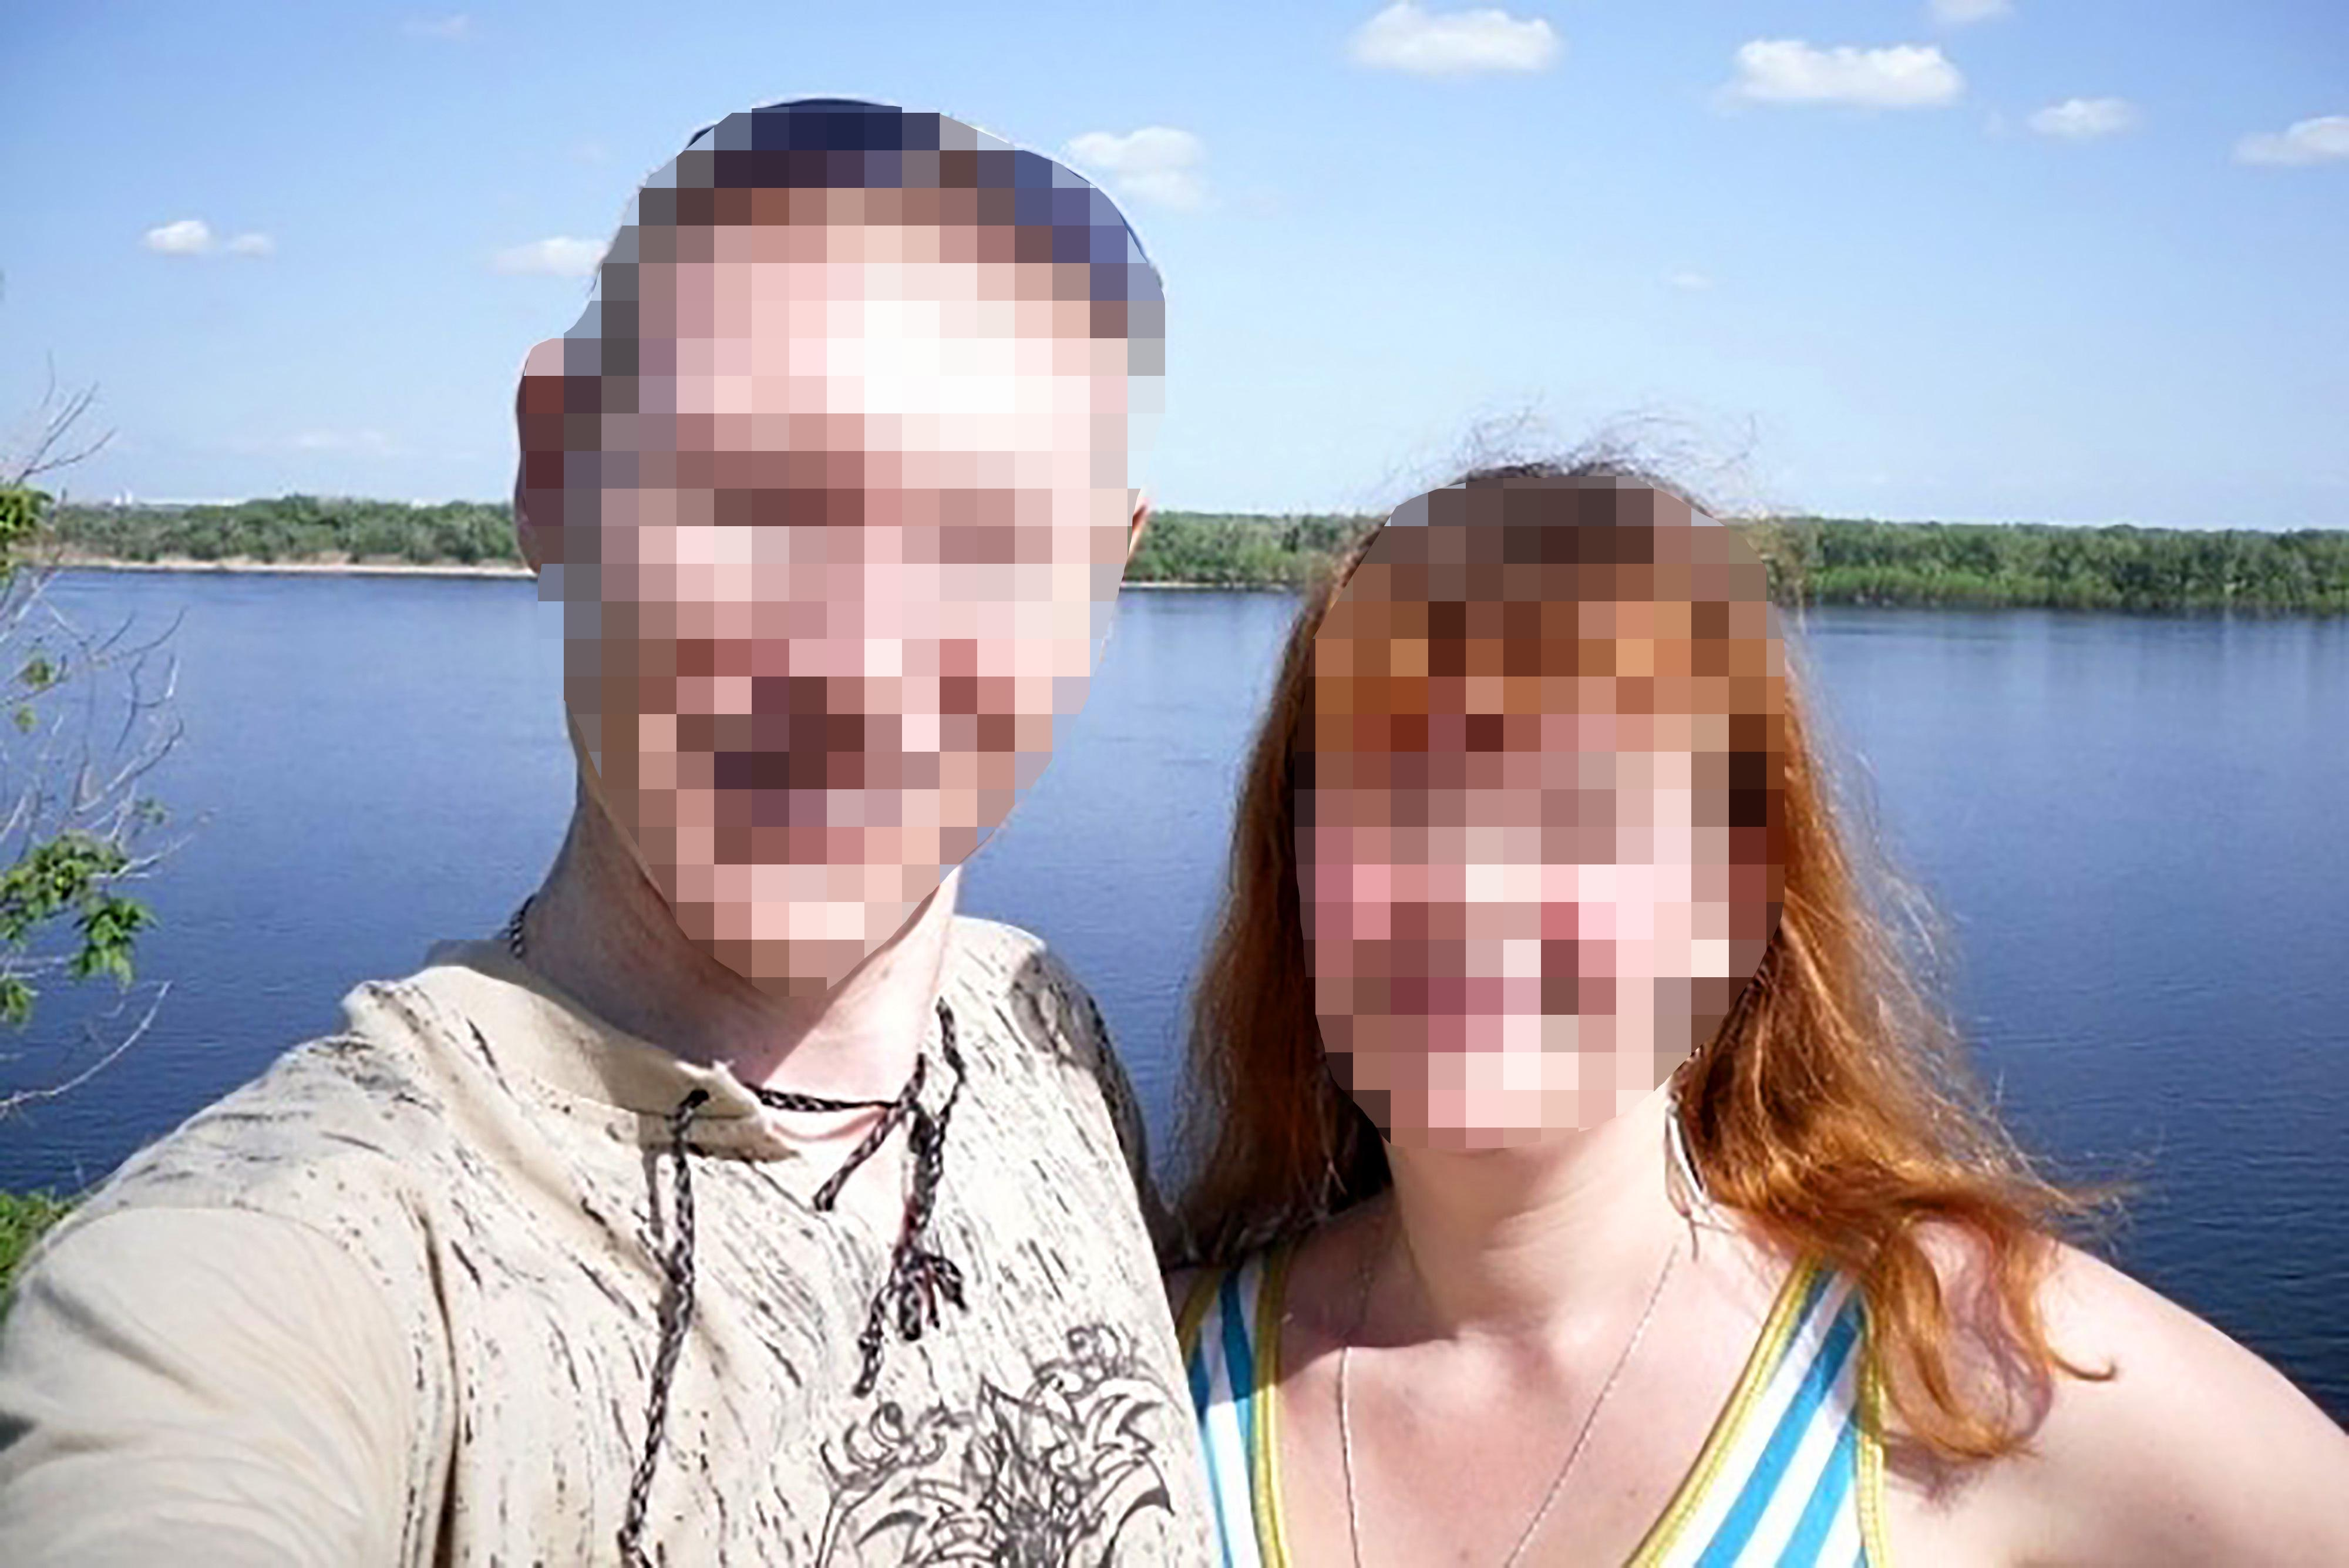 Russian couple 'raped daughter, 12, with a sex toy and forced her into threesome with them' before saying 'better us than some maniac'